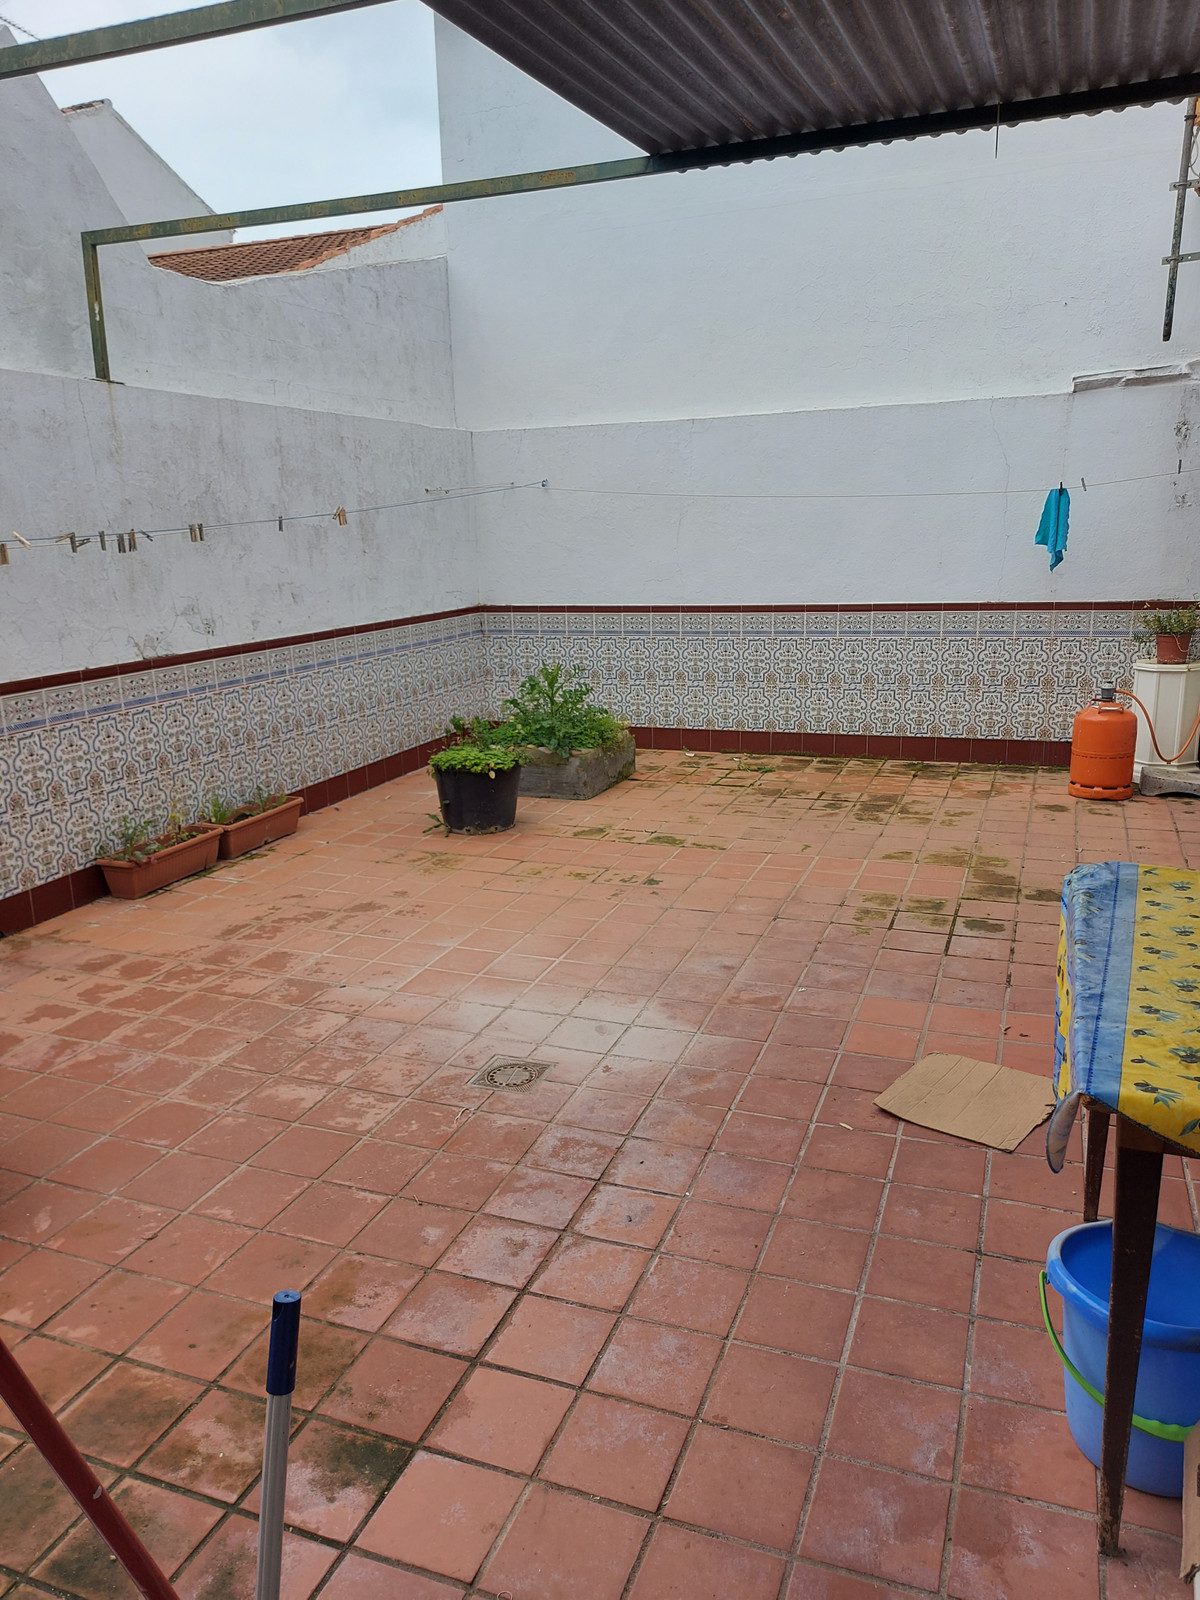 SUPERB TOWN HOUSE IN JIMMENA DE LA FRONTERA WITH LARGE PATIO This beautiful house is for sale in a v,Spain